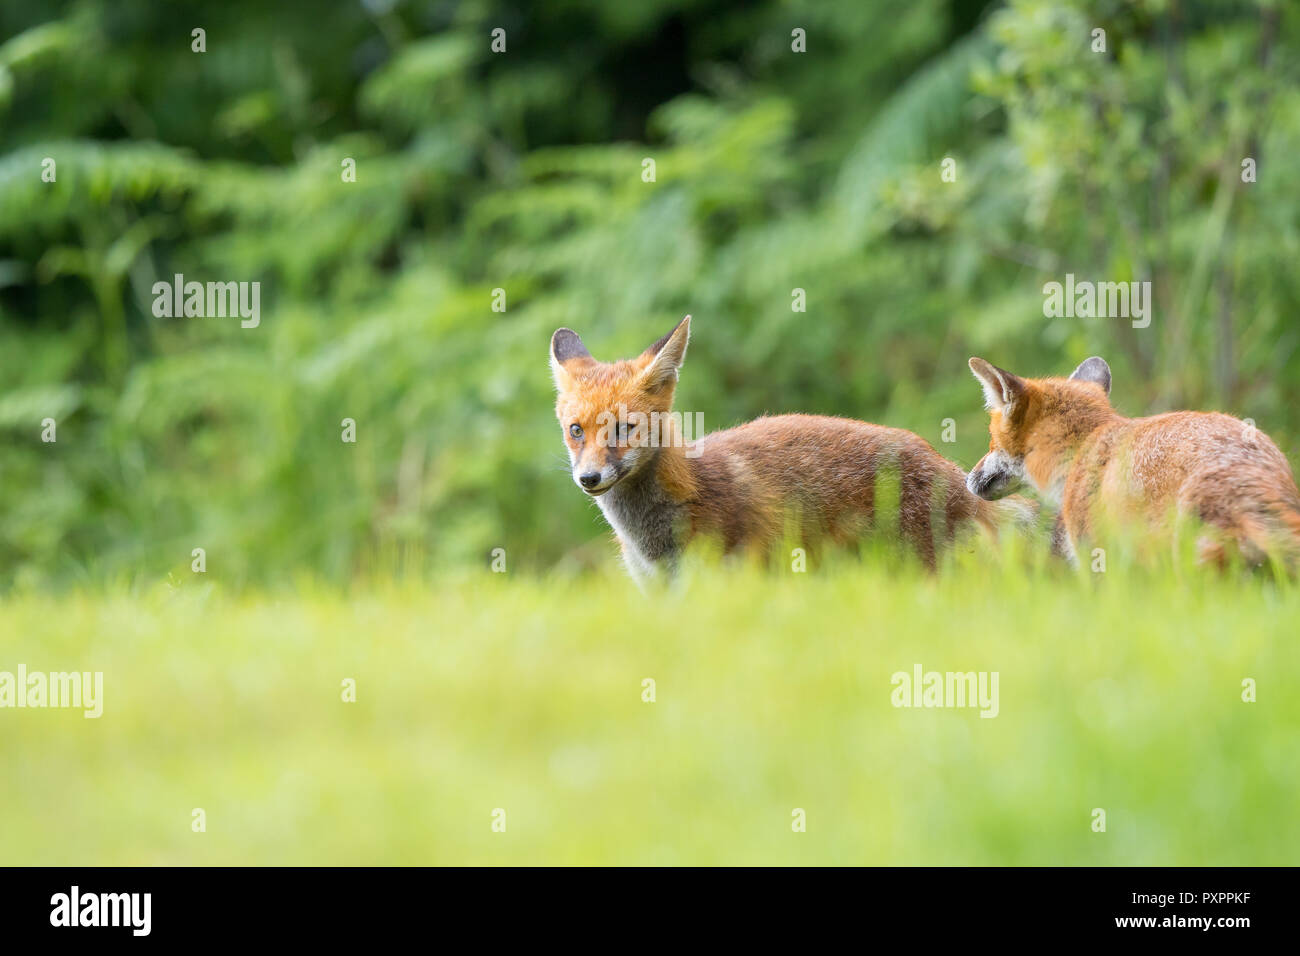 Low angle, landscape capture: pair of young, wild red foxes (Vulpes vulpes) stood in grass, against natural woodland background, looking playful. - Stock Image